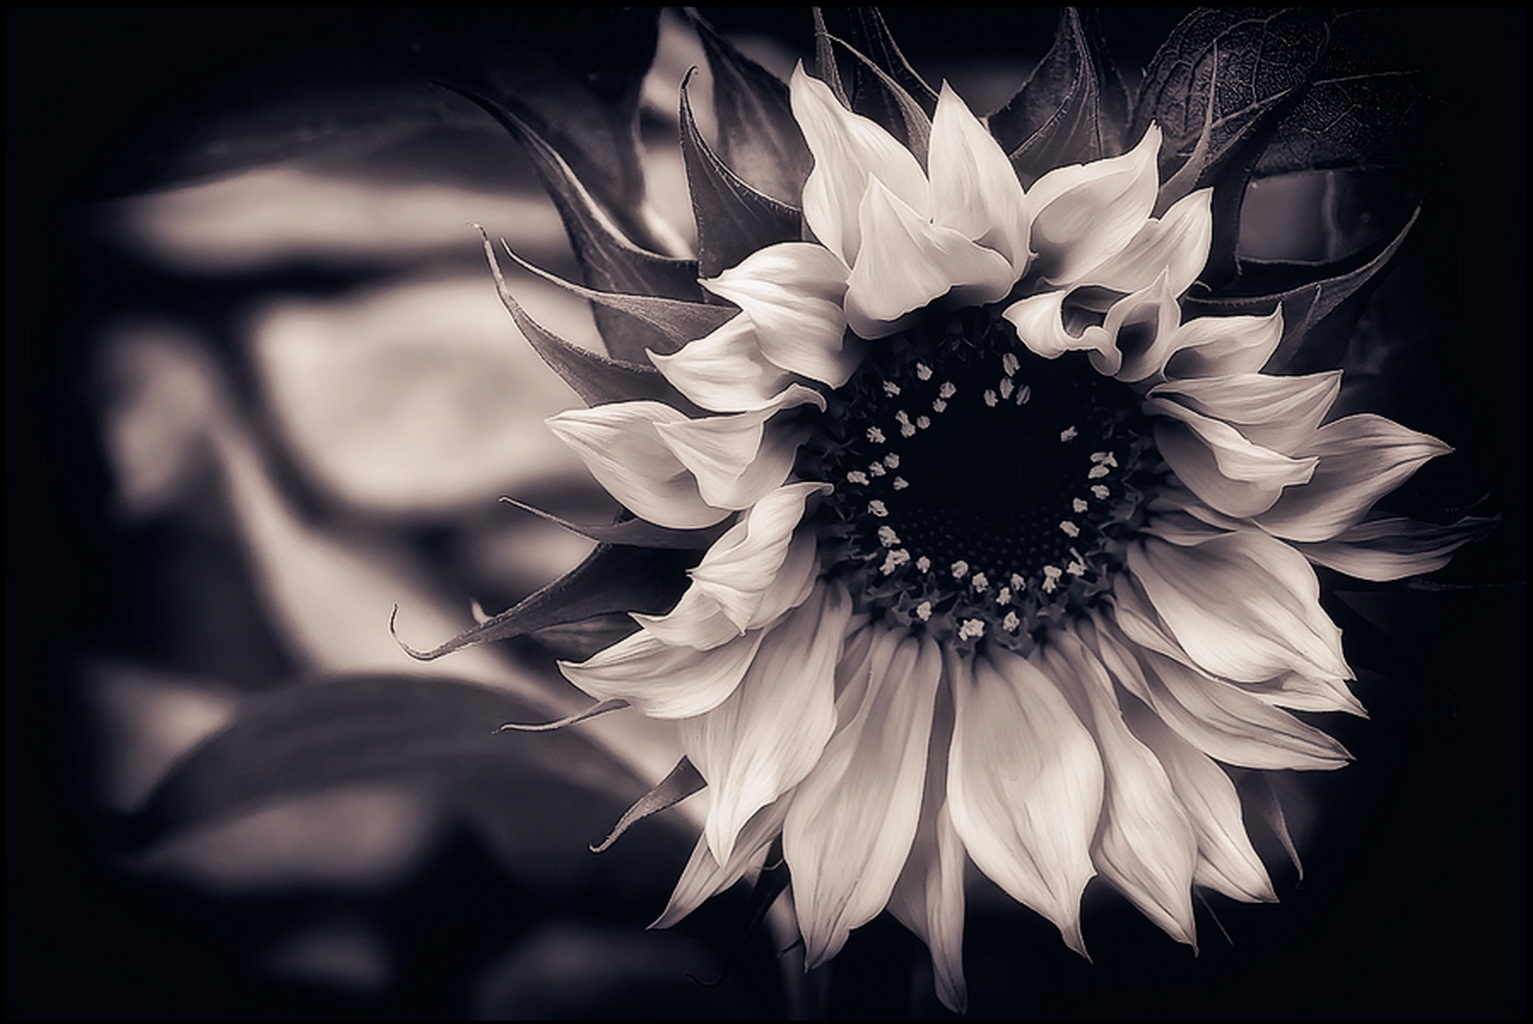 sunflower, black-and-white, background